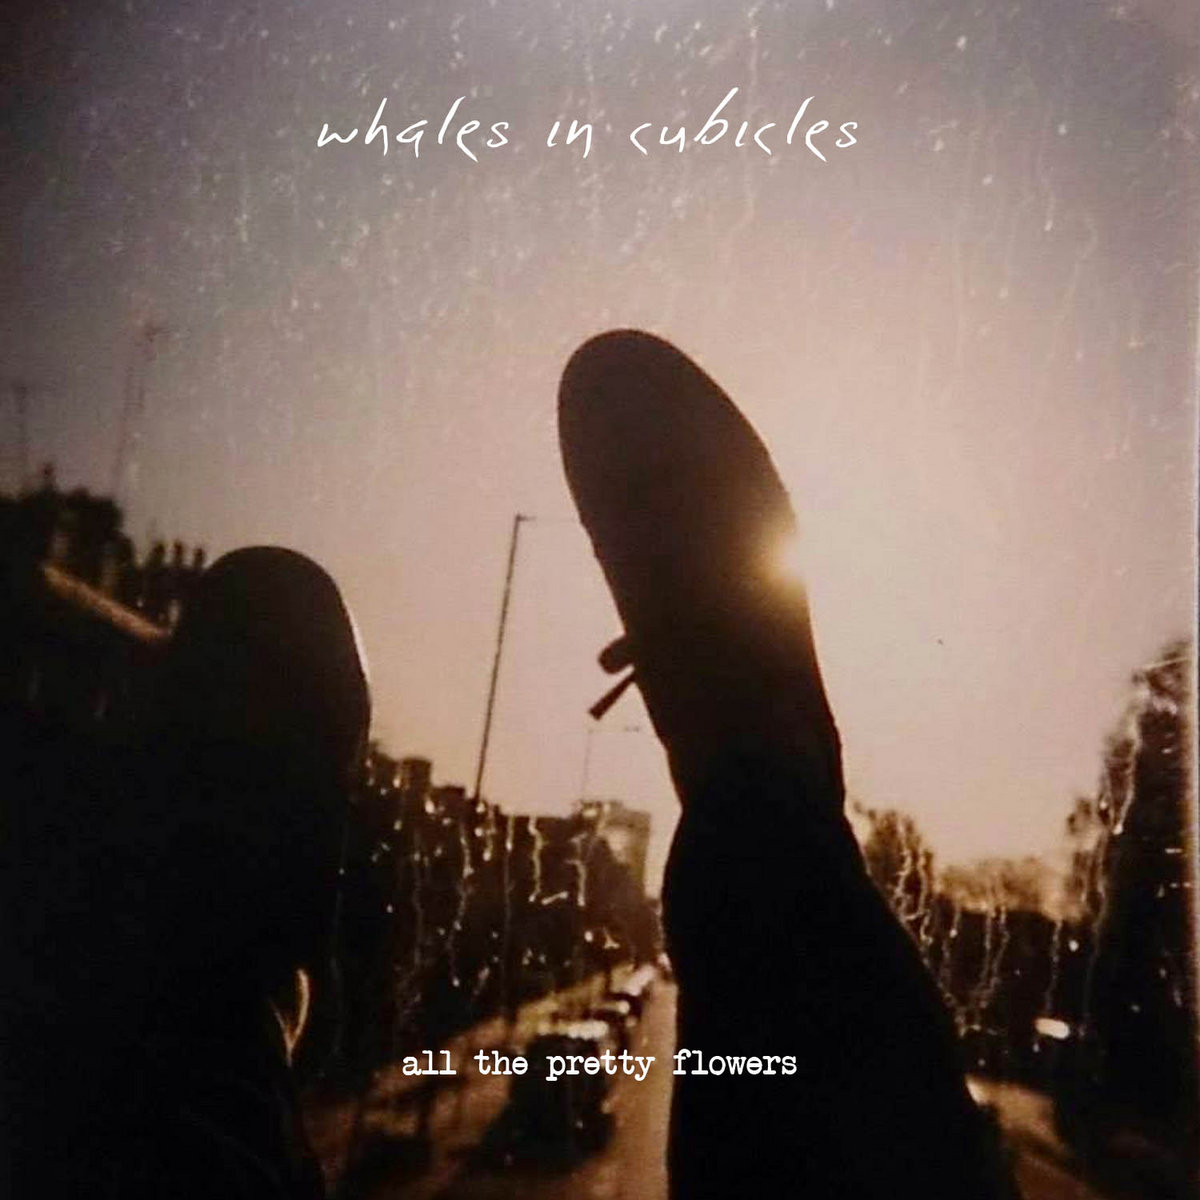 All The Pretty Flowers Acoustic Free Download Whales In Cubicles